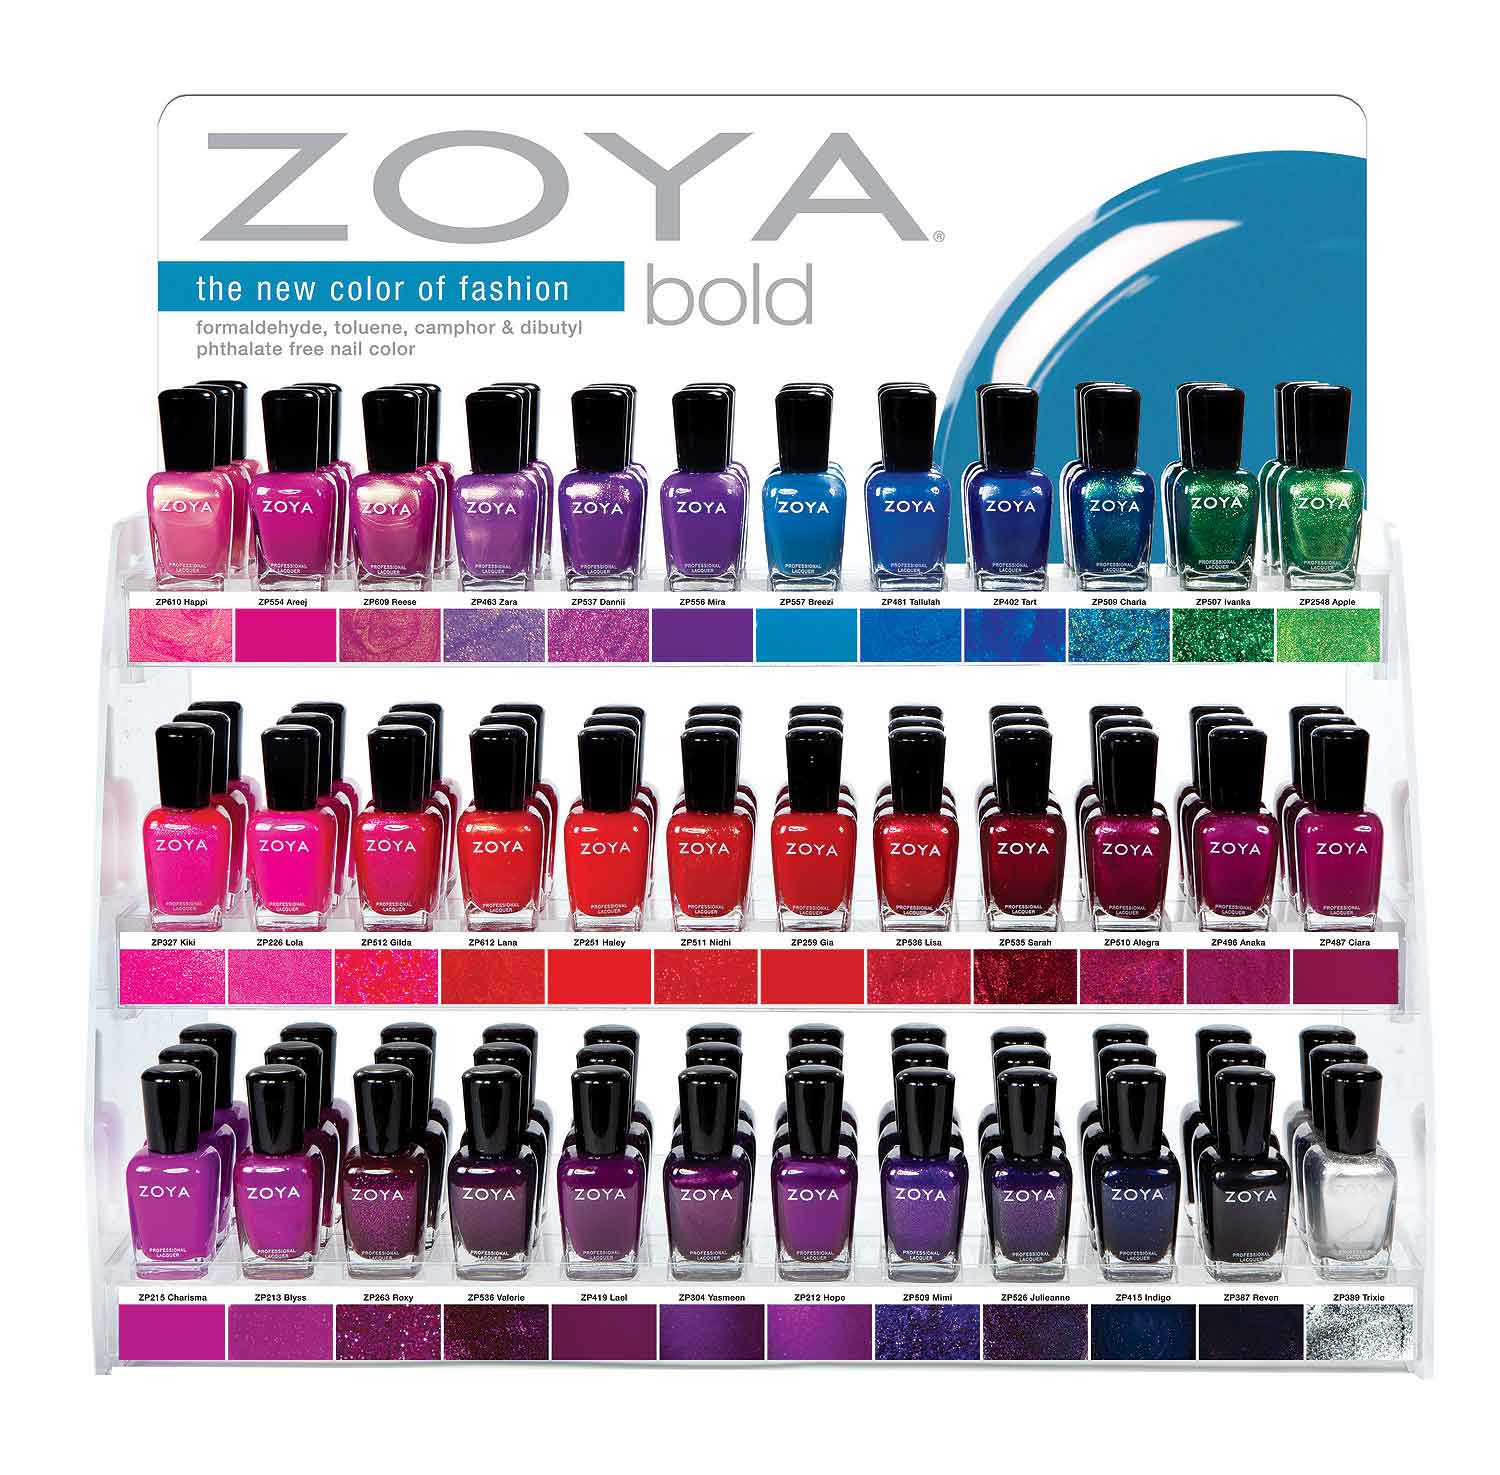 Zoya Display